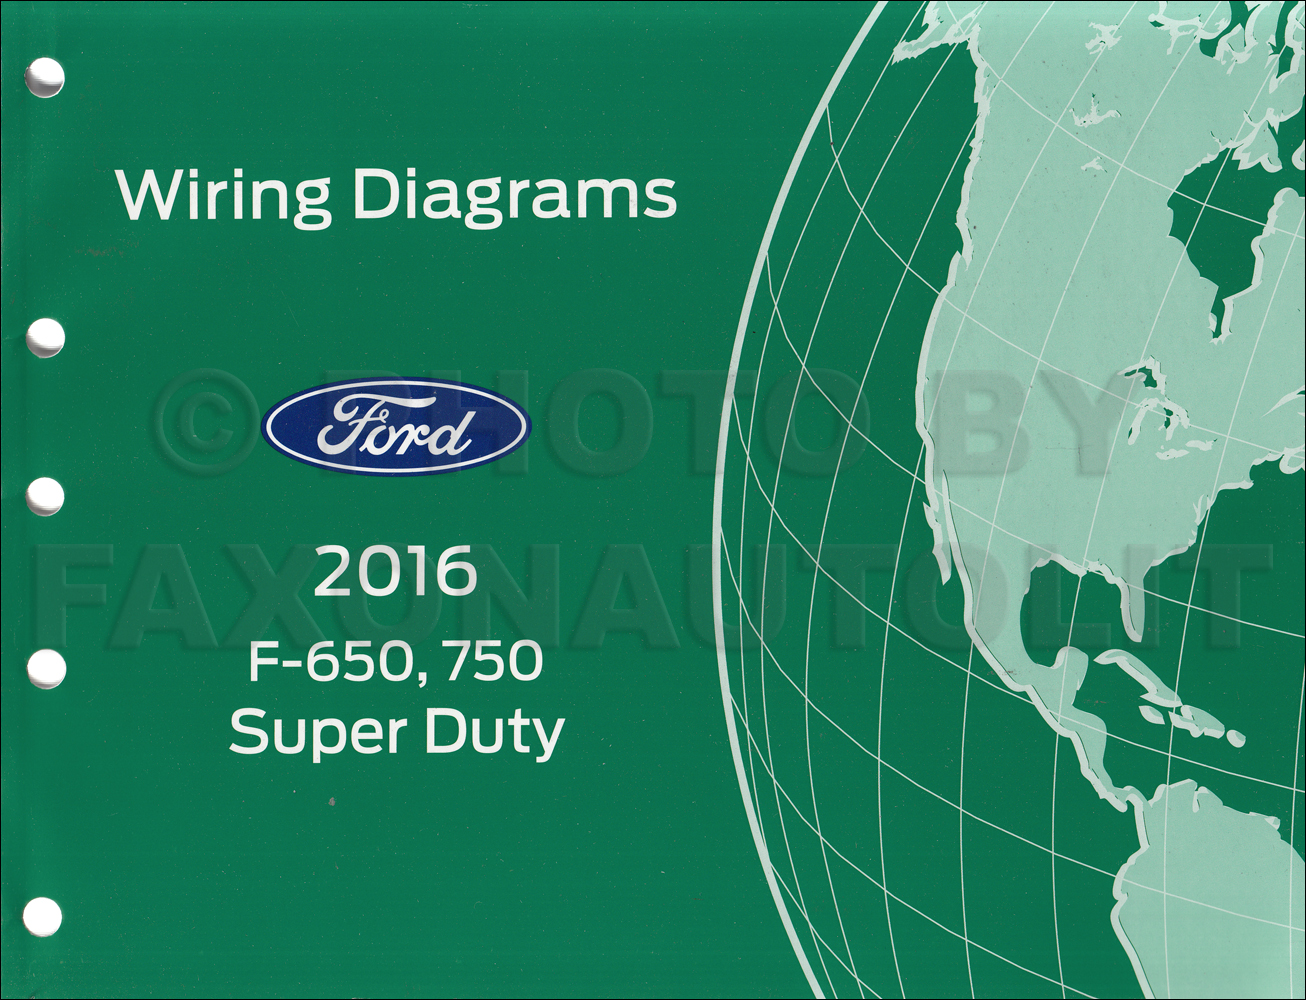 hight resolution of 2016 ford f 650 and f 750 super duty truck wiring diagram manual ford f650 wiring diagram 1995 ford f650 wiring diagram